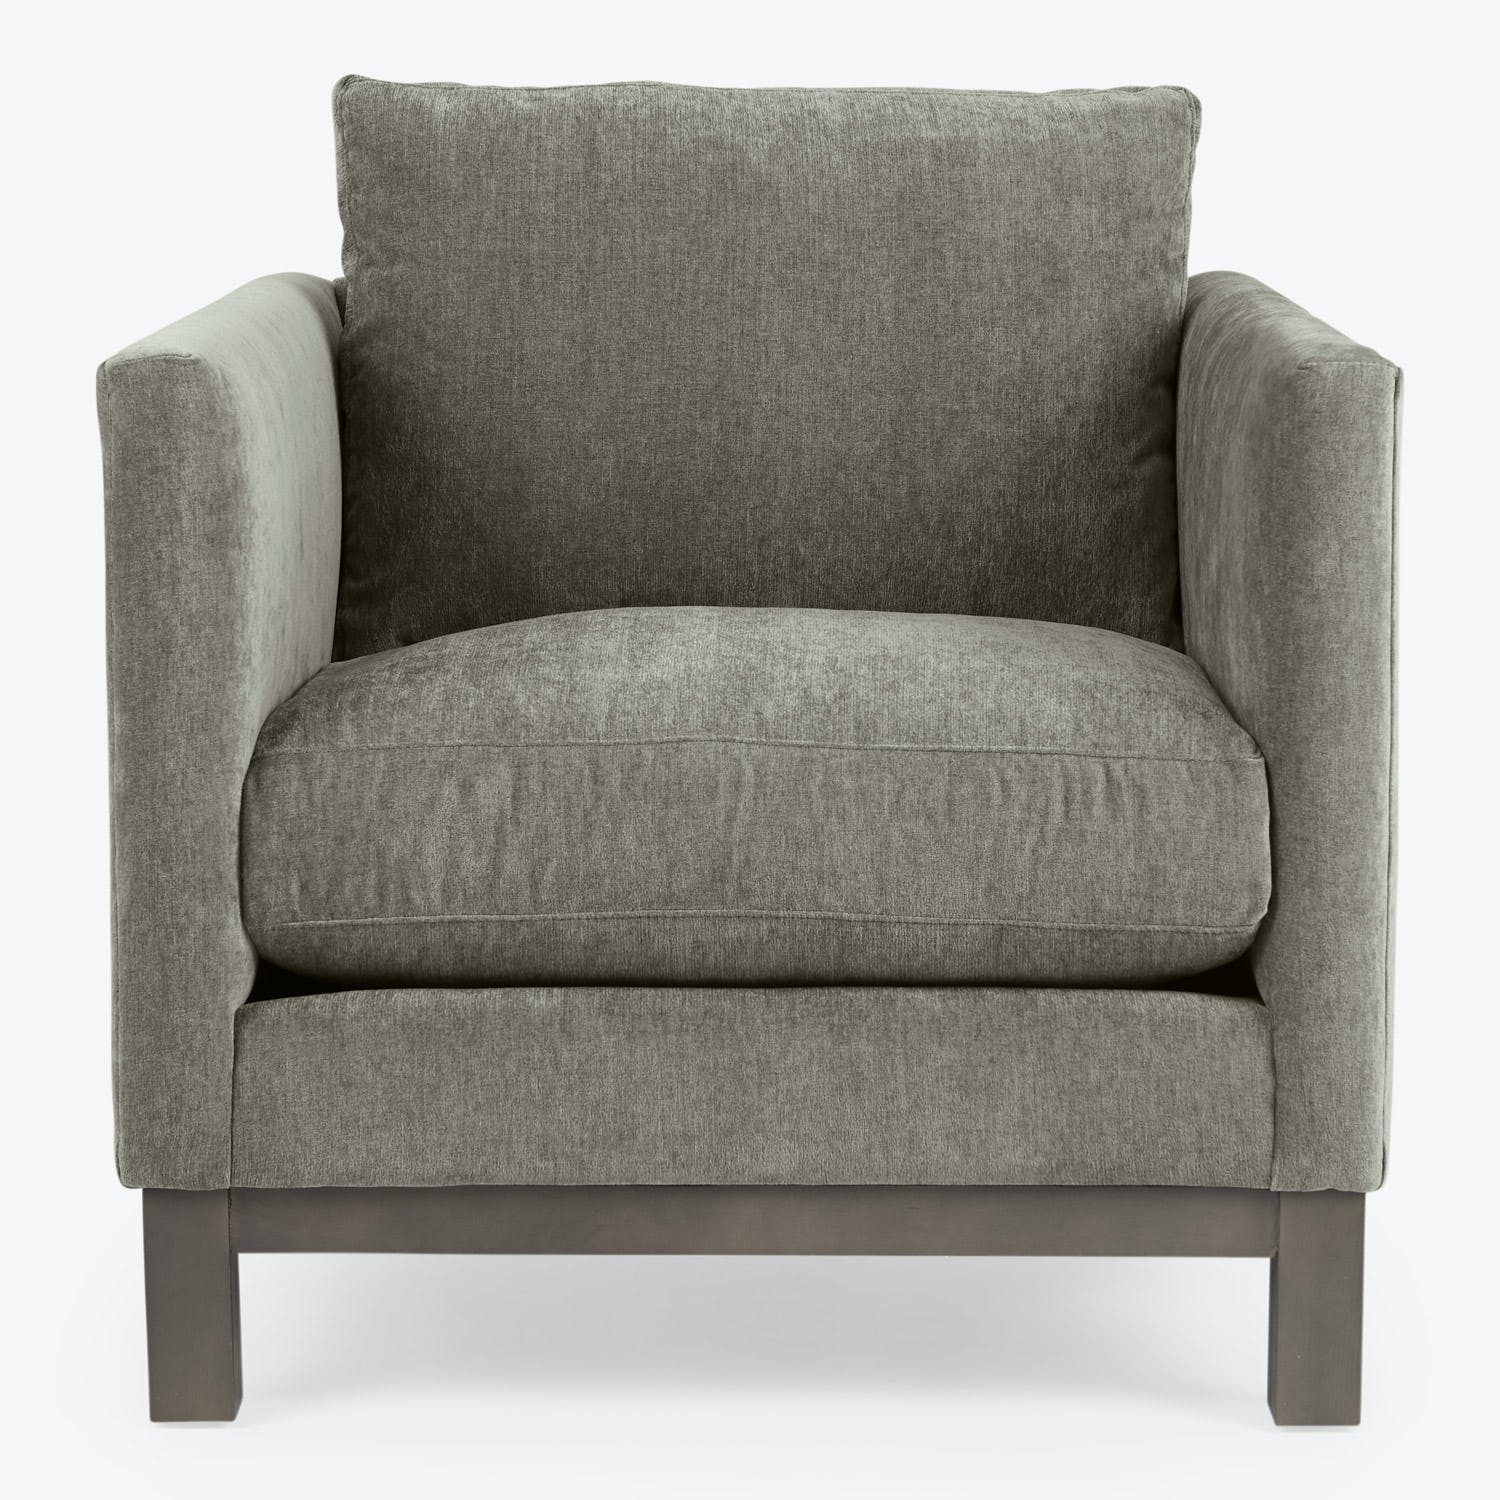 Product Image - Prescott Chair